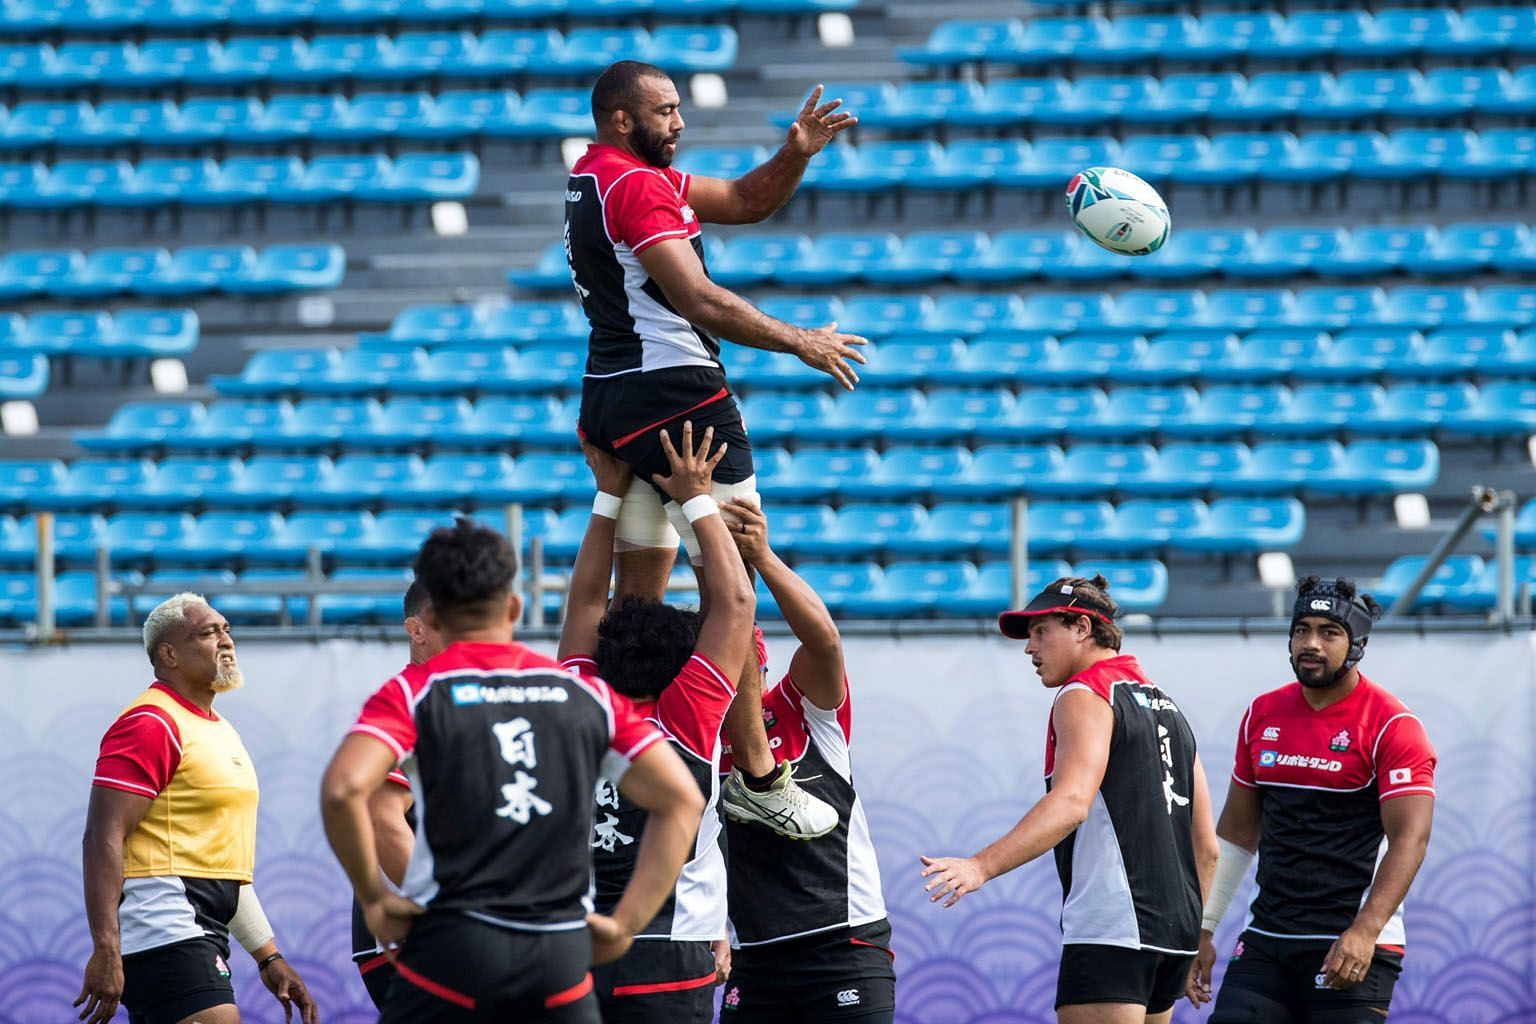 Japan flanker and captain Michael Leitch (top) training with his teammates at the Prince Chichibu Memorial Rugby Stadium in Tokyo ahead of the World Cup which begins today. PHOTO: AGENCE FRANCE-PRESSE